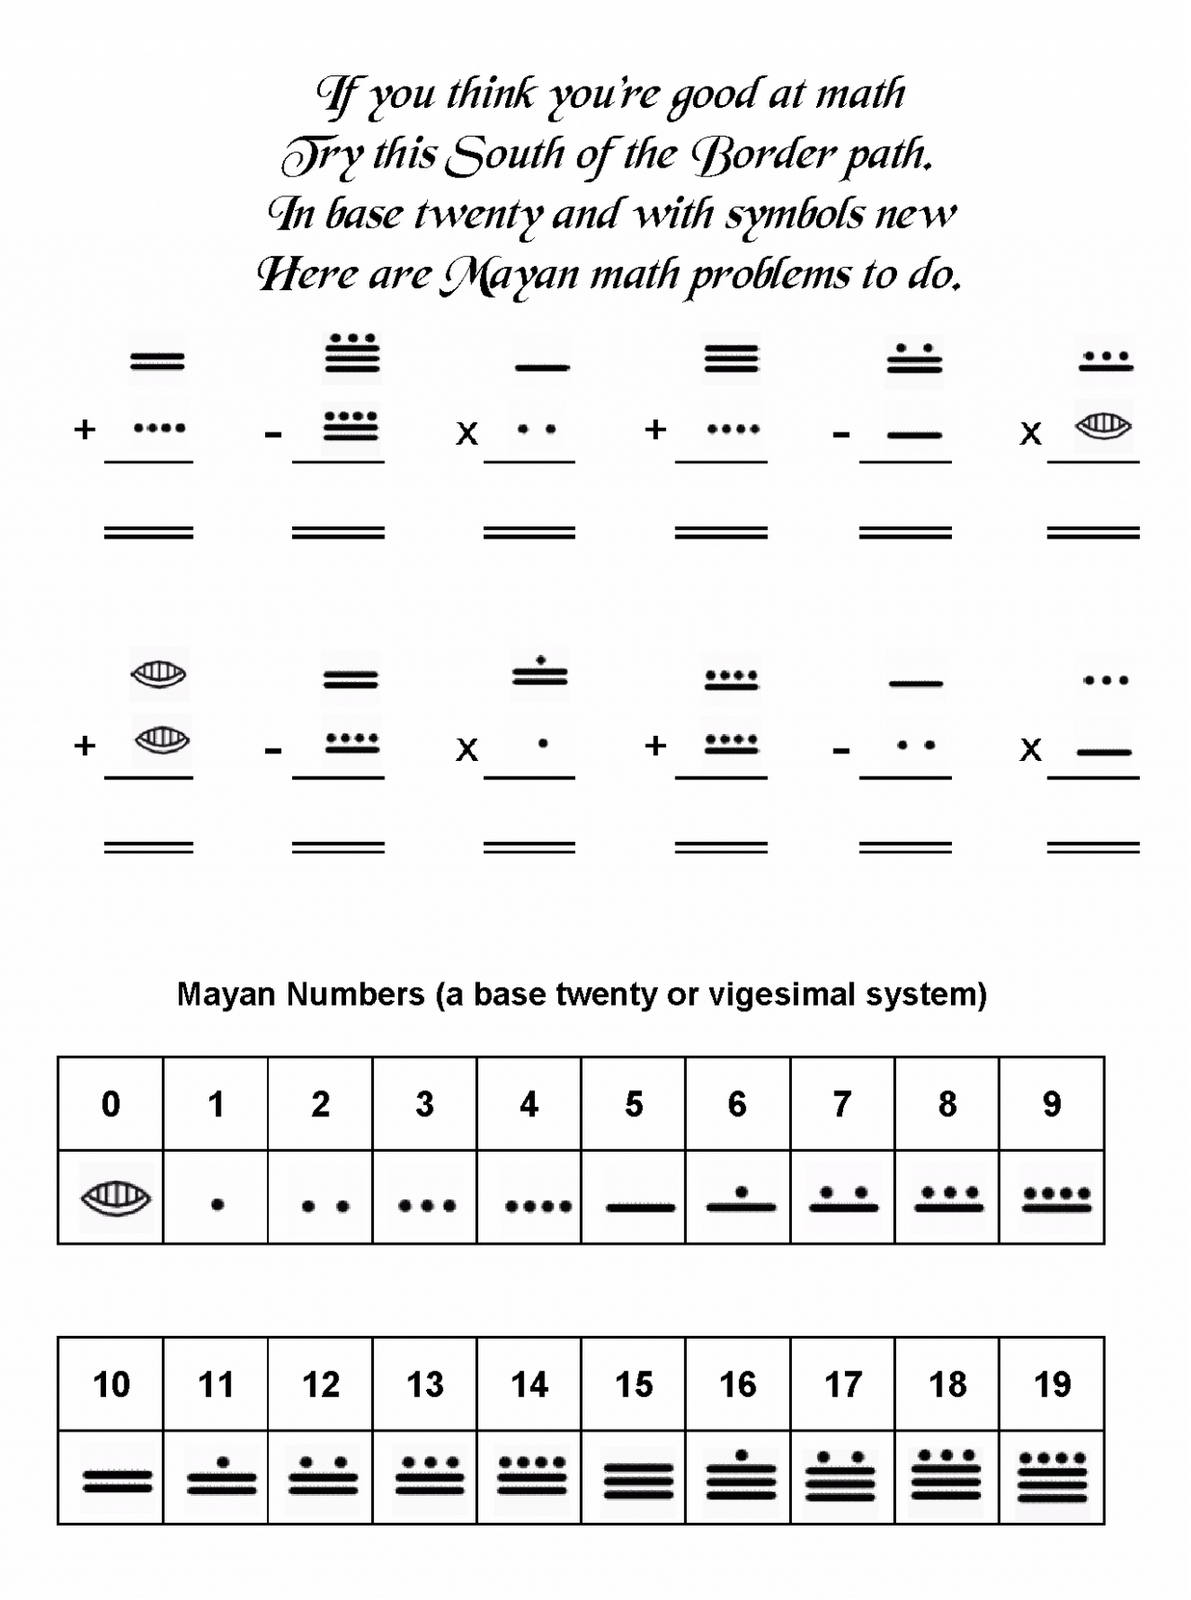 Mayan Math Symbols Gallery - meaning of text symbols